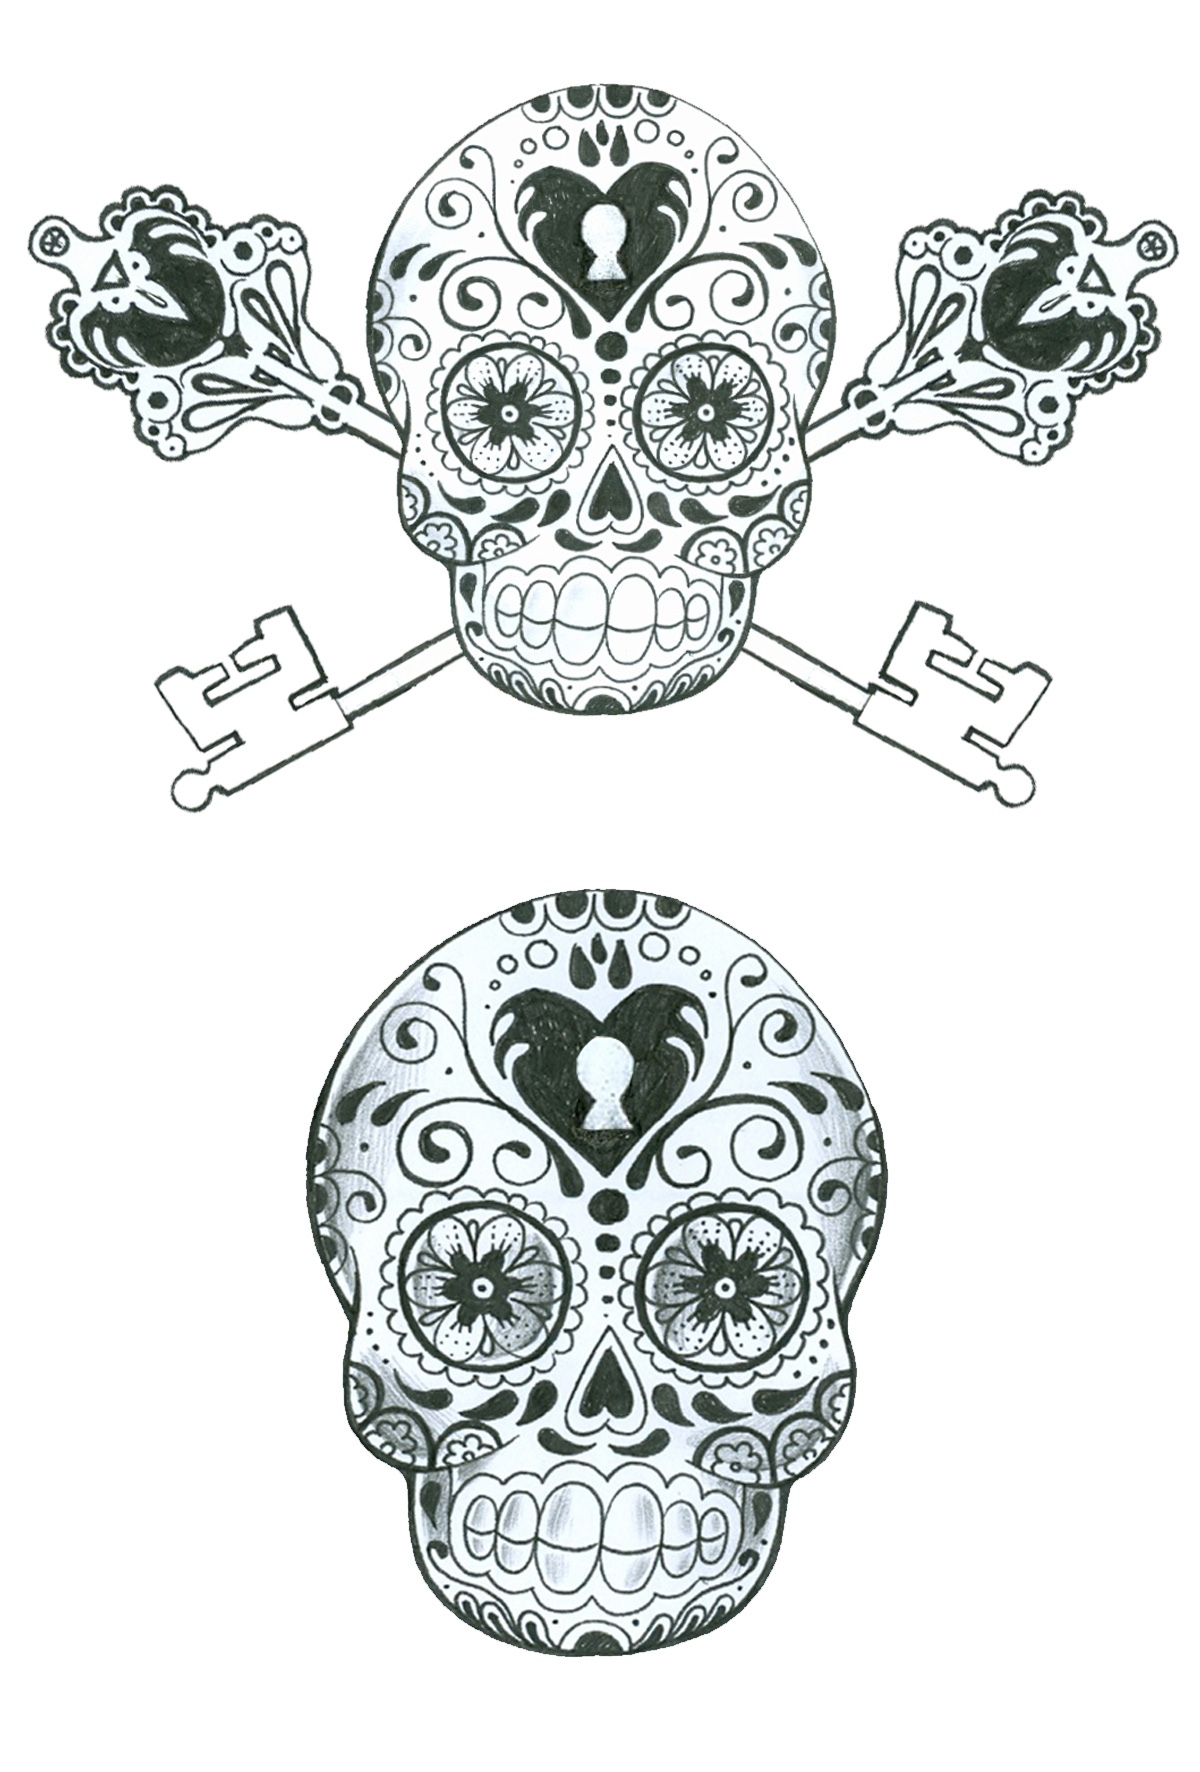 Skull and crossbones tattoo designs images for tatouage skull and crossbones tattoo designs intended for hawaiian tattoo symbols and meanings free skull and biocorpaavc Images